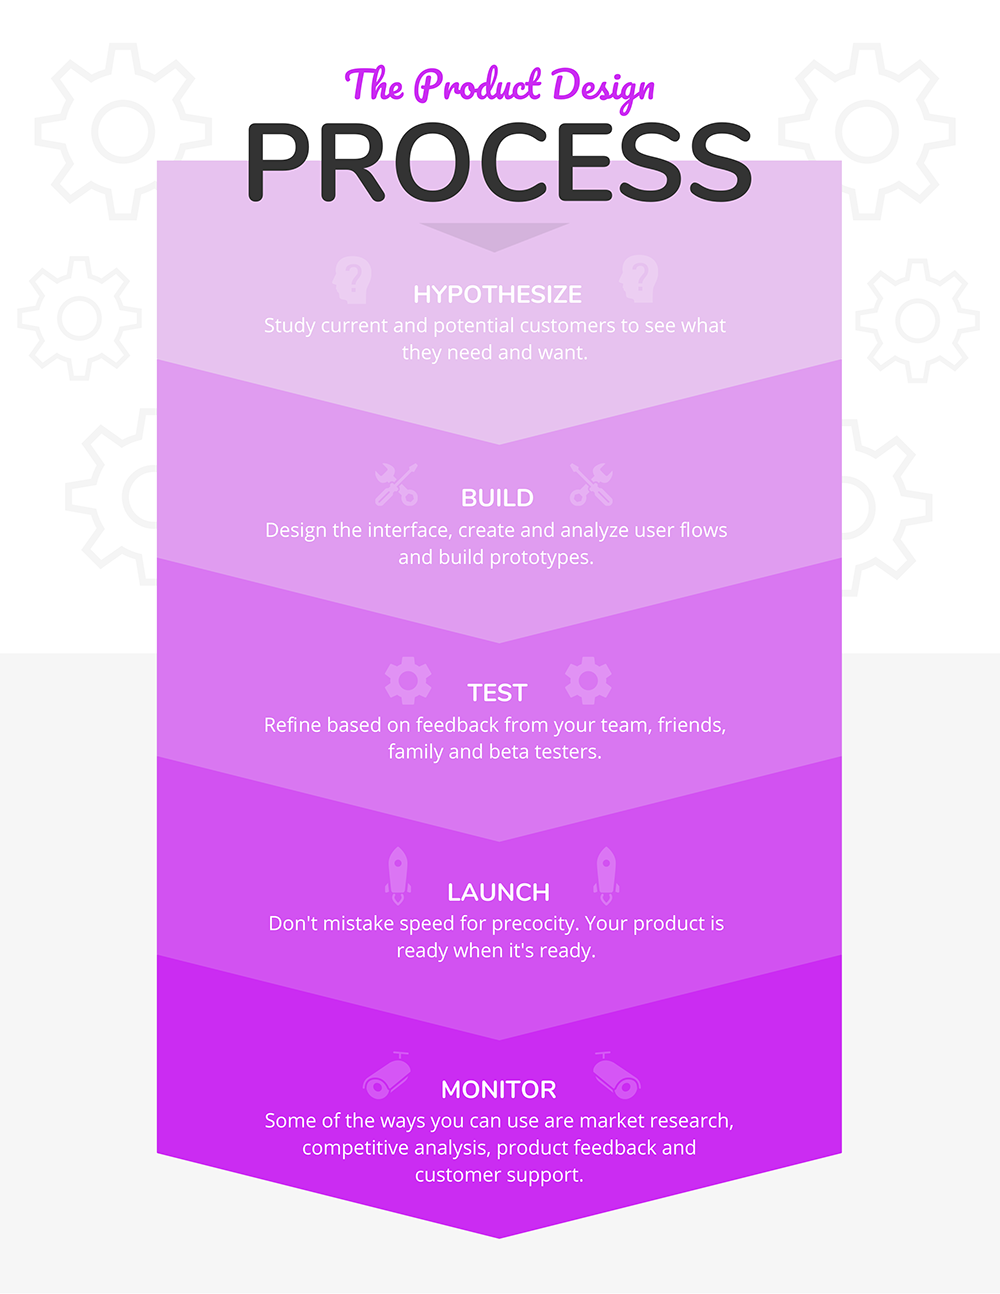 10+ process infographic templates and visualization tips - venngage